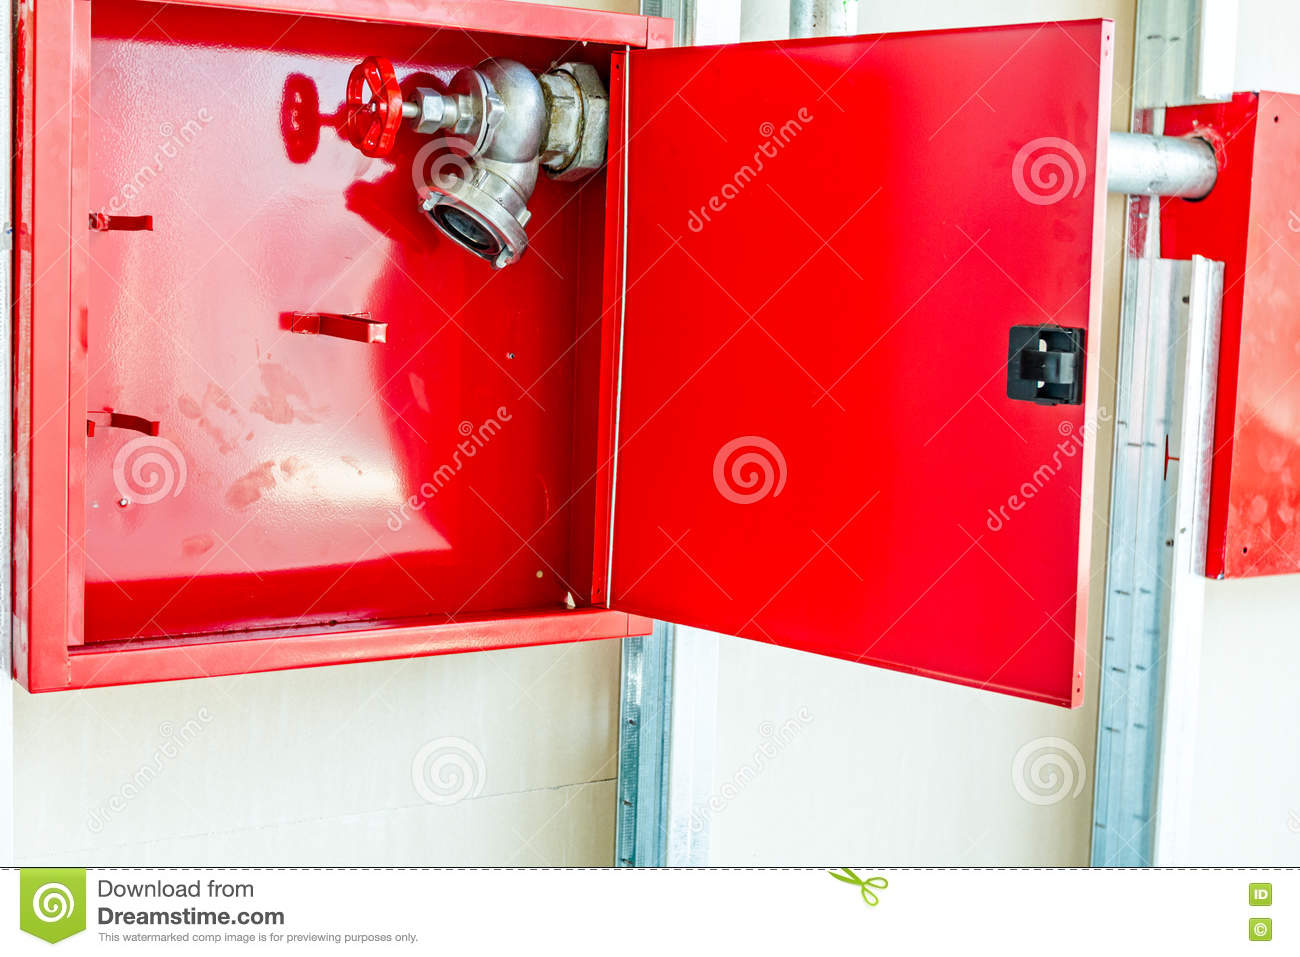 Red Box With Fire Hydrant Is Built In An Unfinished Plaster Wall ...